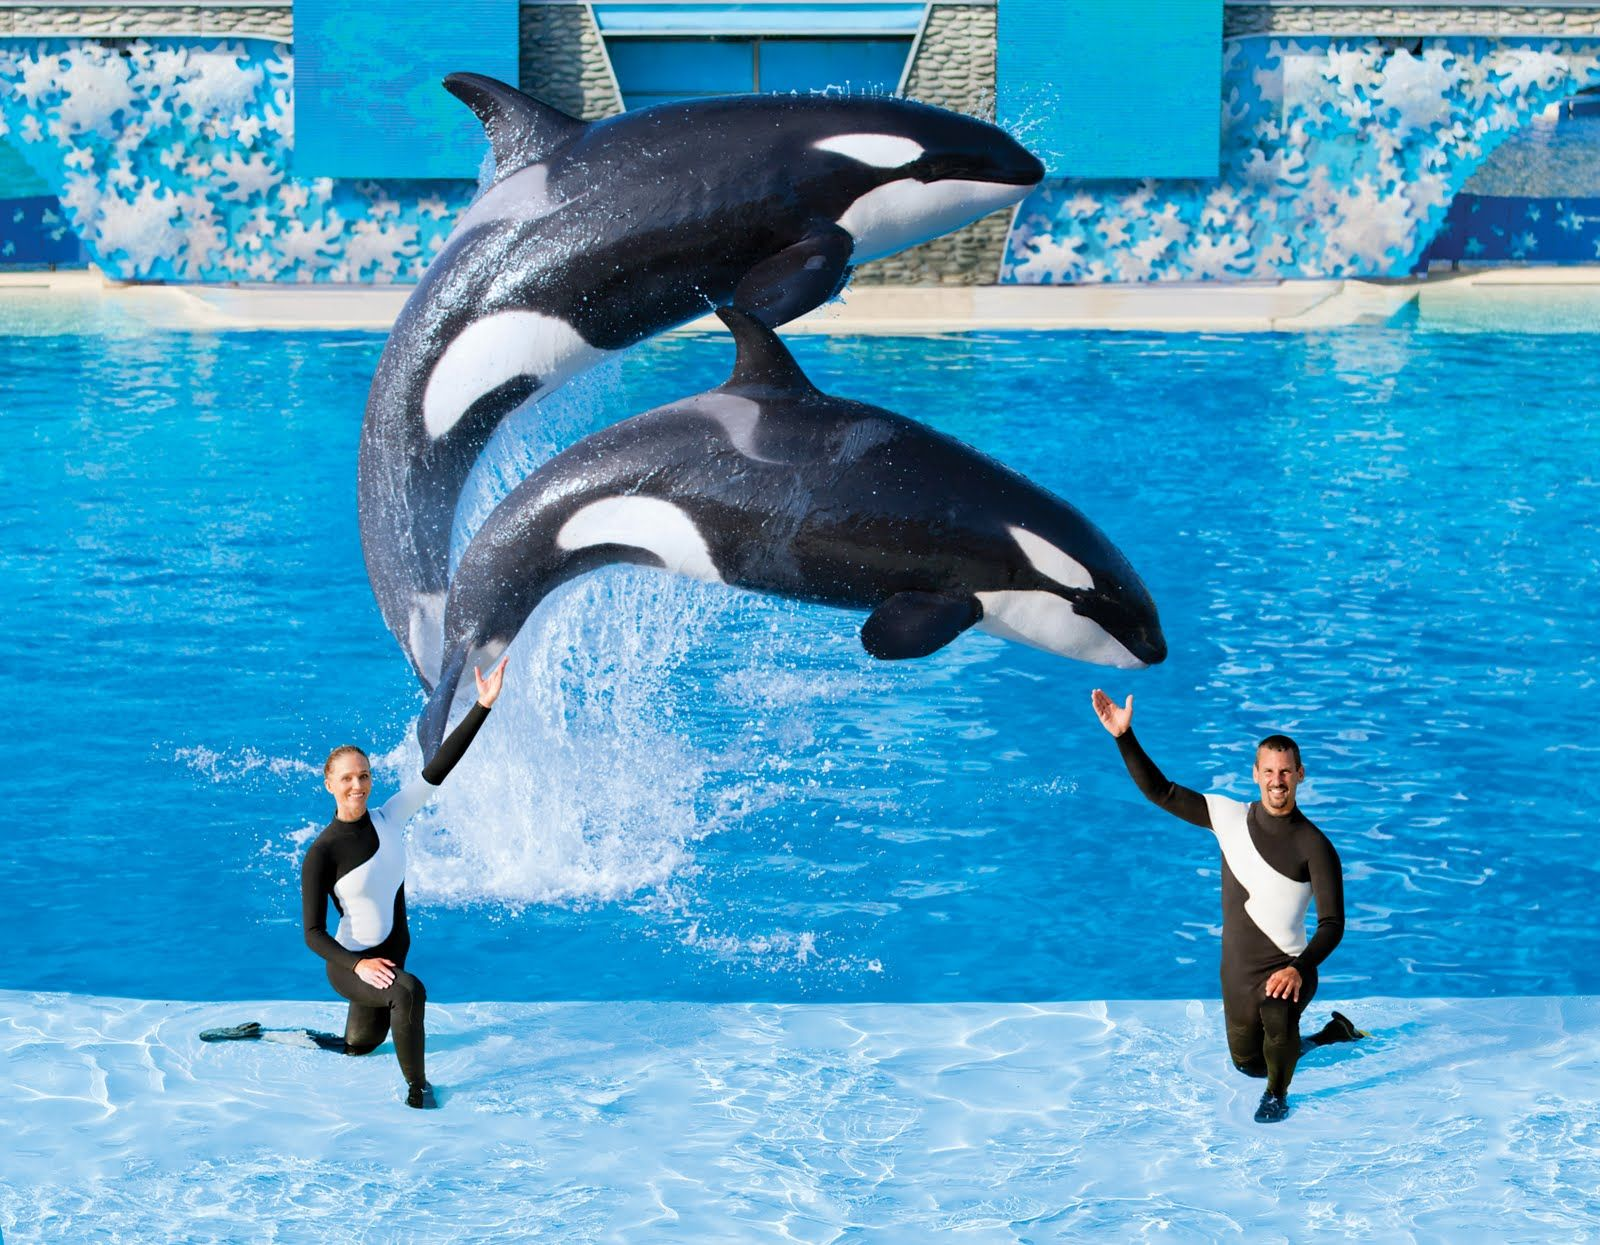 The+Humane+Society+of+the+United+States+(HSUS)+commends+SeaWorld+for ...